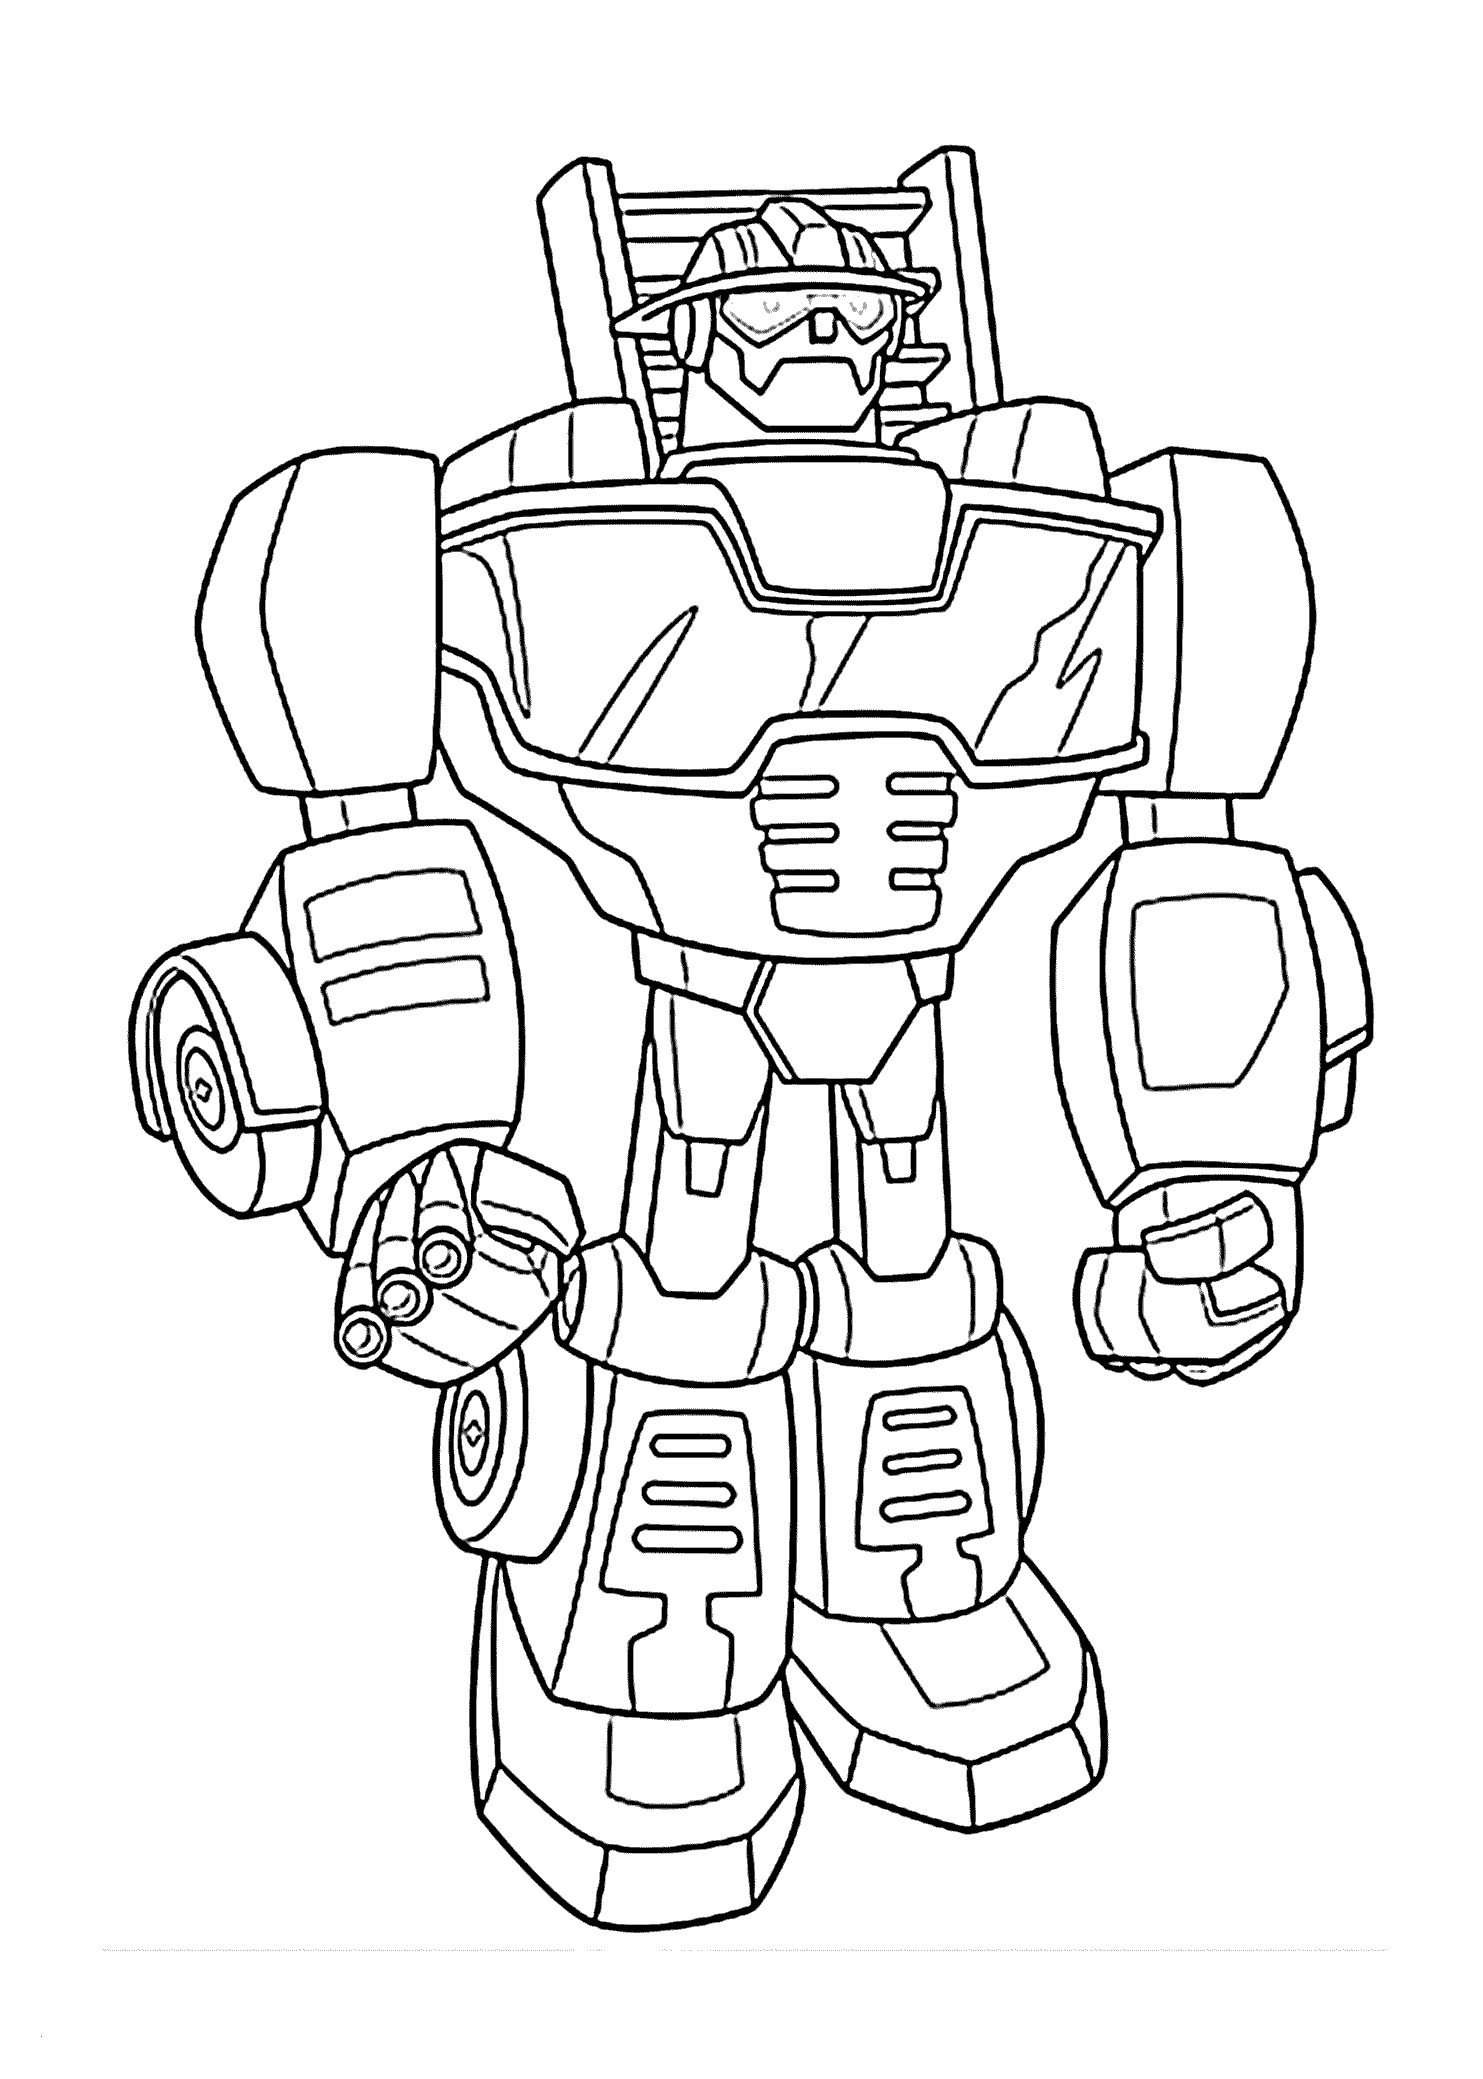 Ausmalbilder Transformers Optimus Prime Einzigartig Rescue Bots Coloring Pages New 40 Ausmalbilder Transformers Optimus Bilder